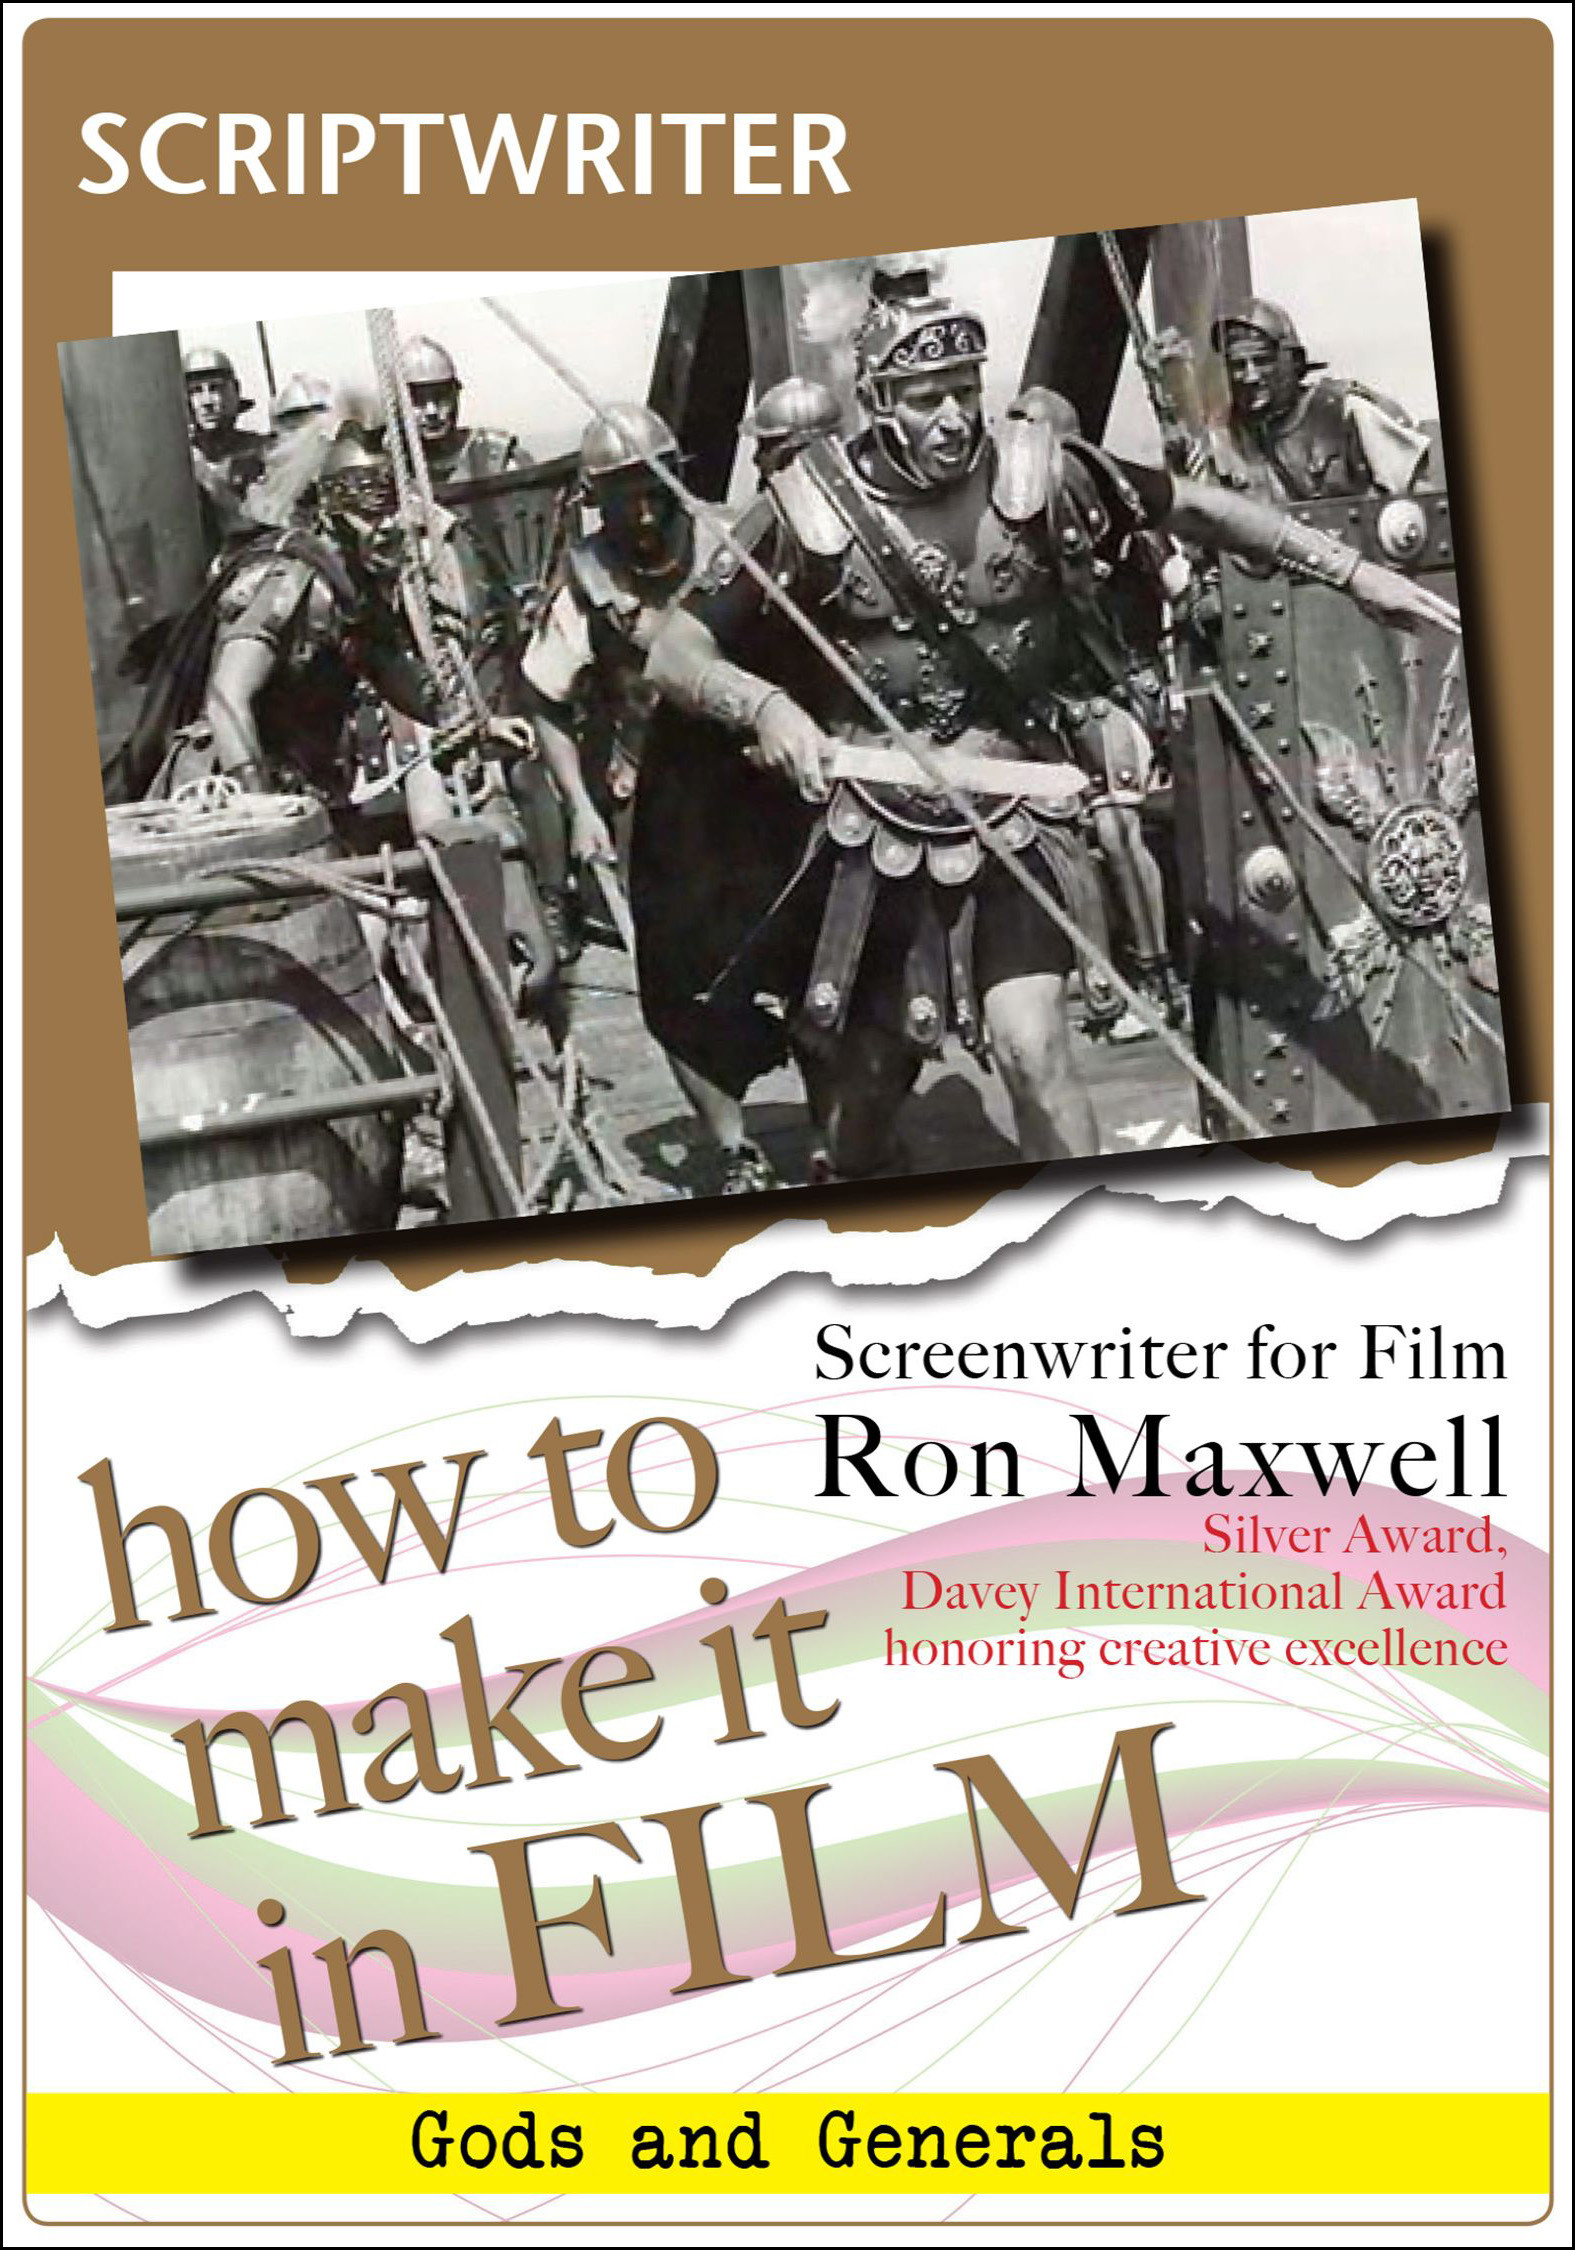 F2852 - Scriptwriter For Film Ron Maxwell